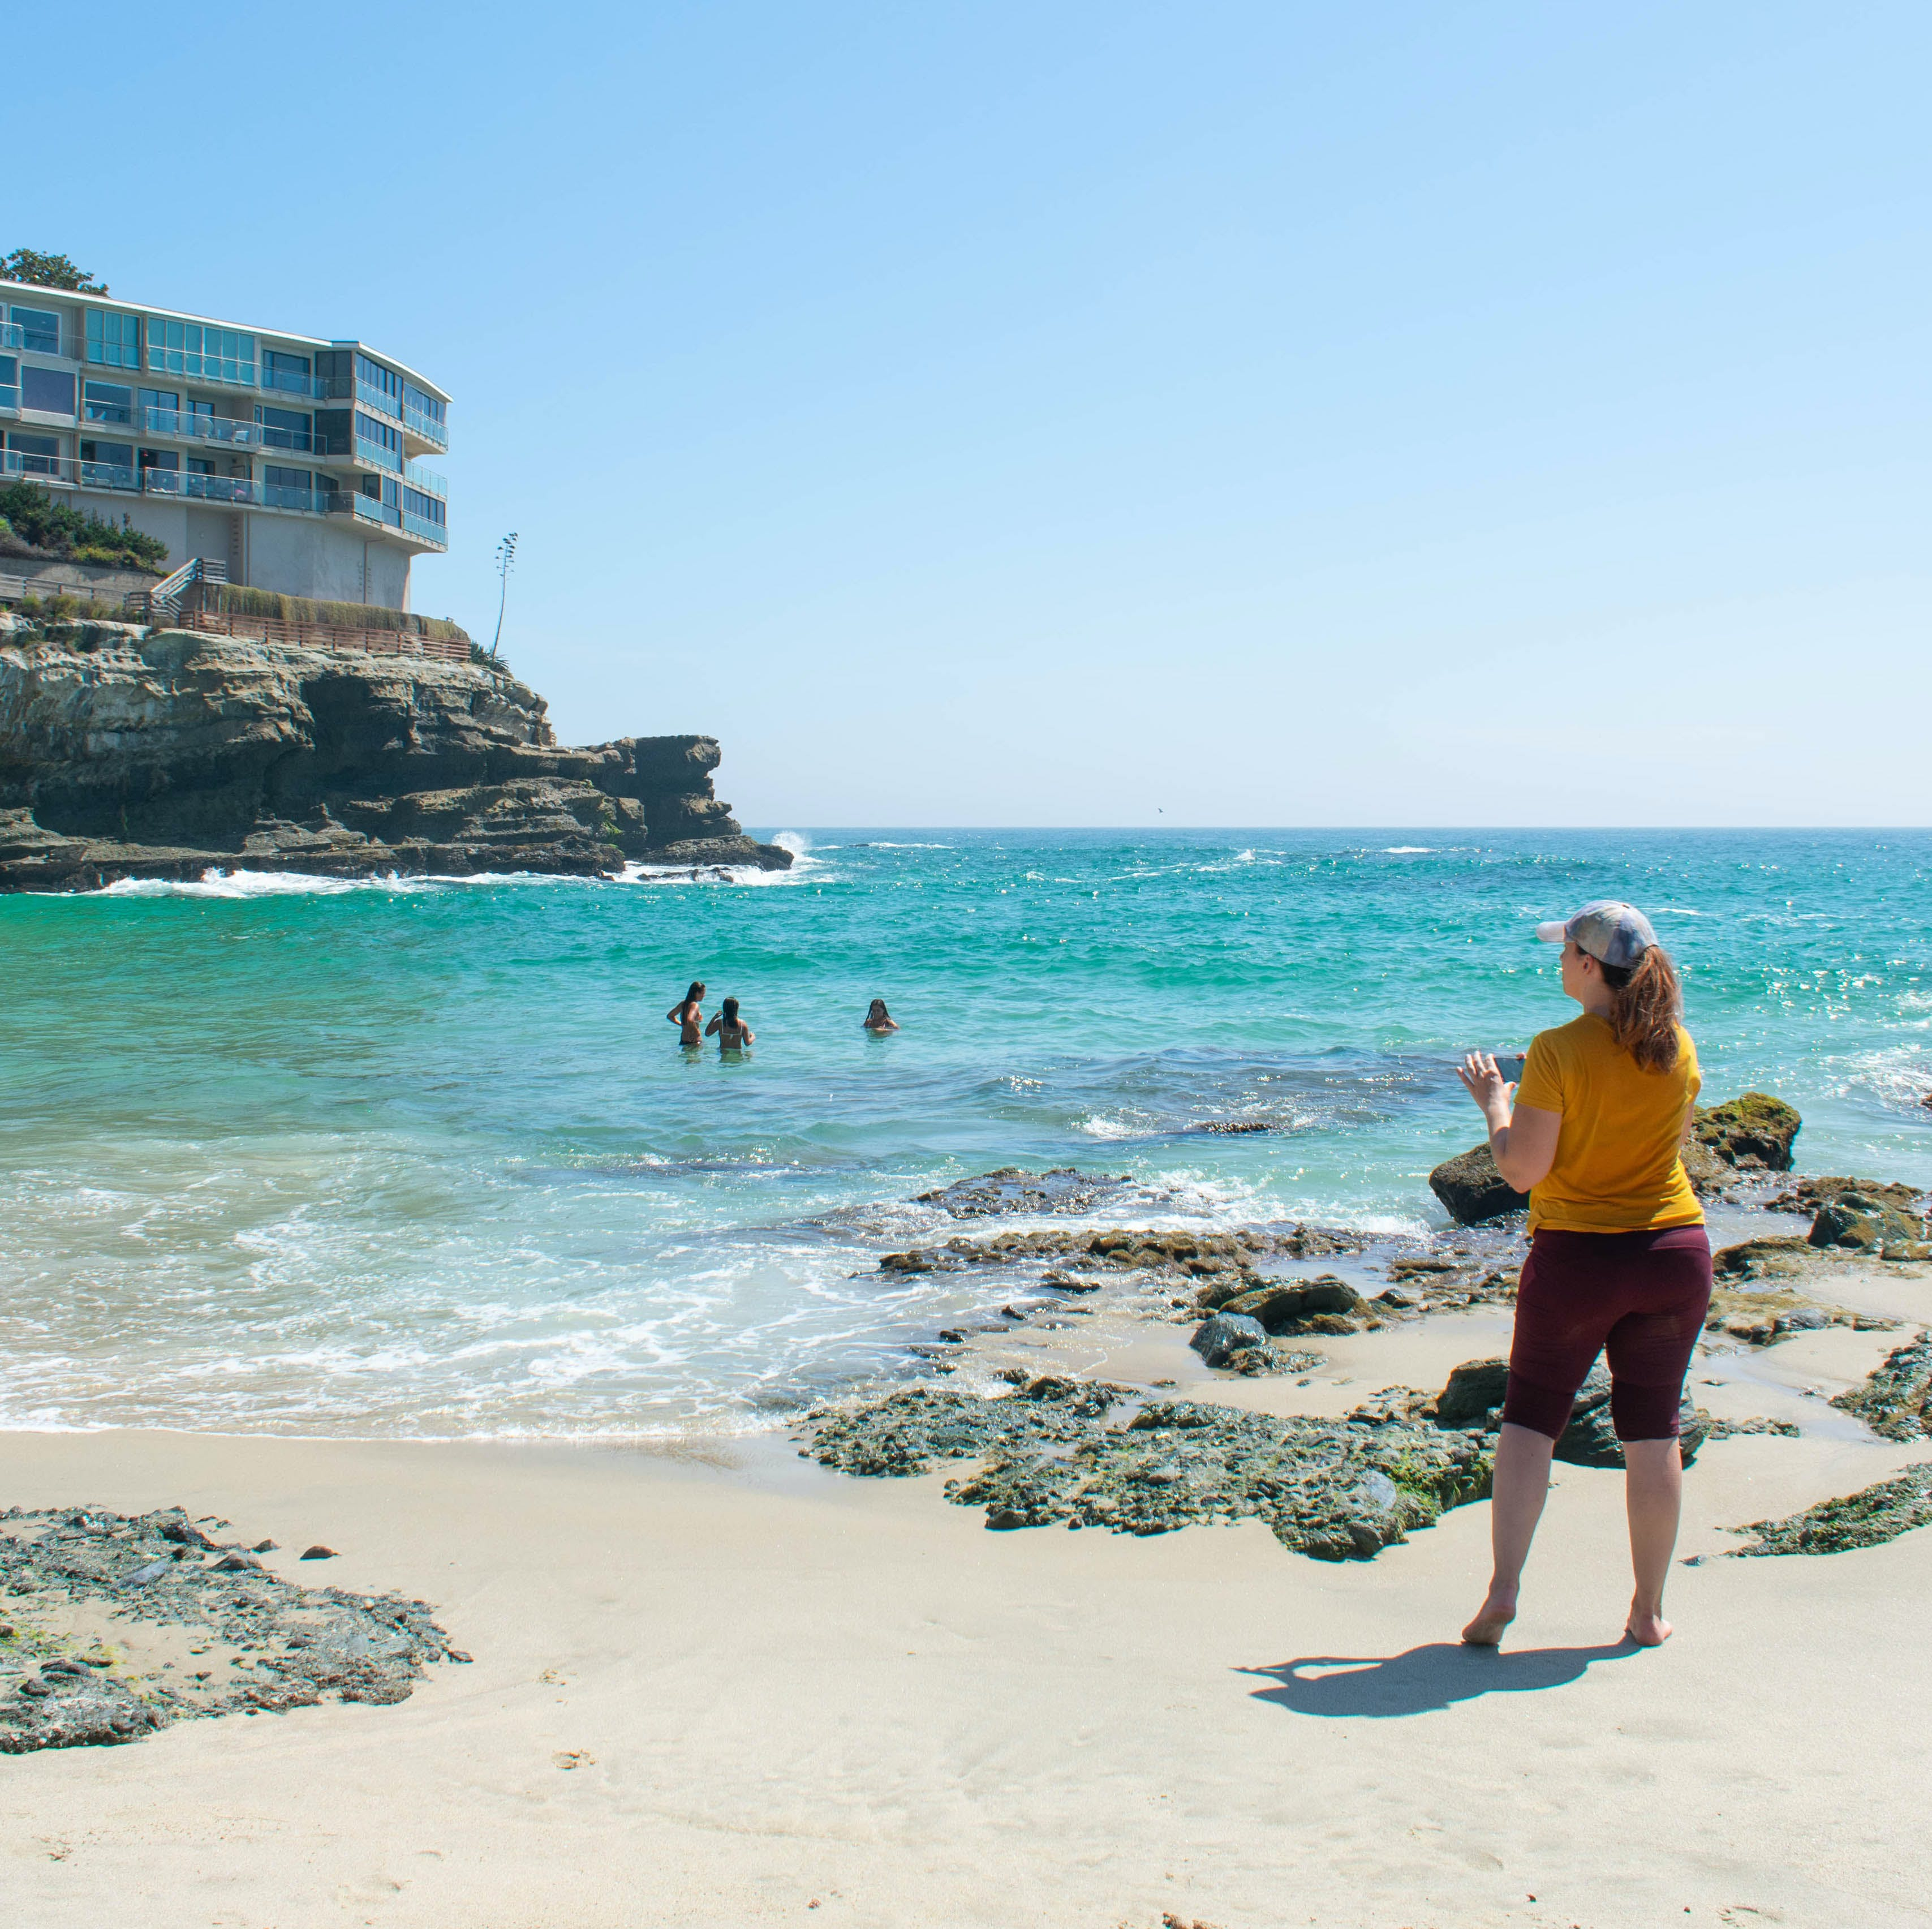 Woman standing at a turquoise beach cove at Coast Royale Beach in Orange County